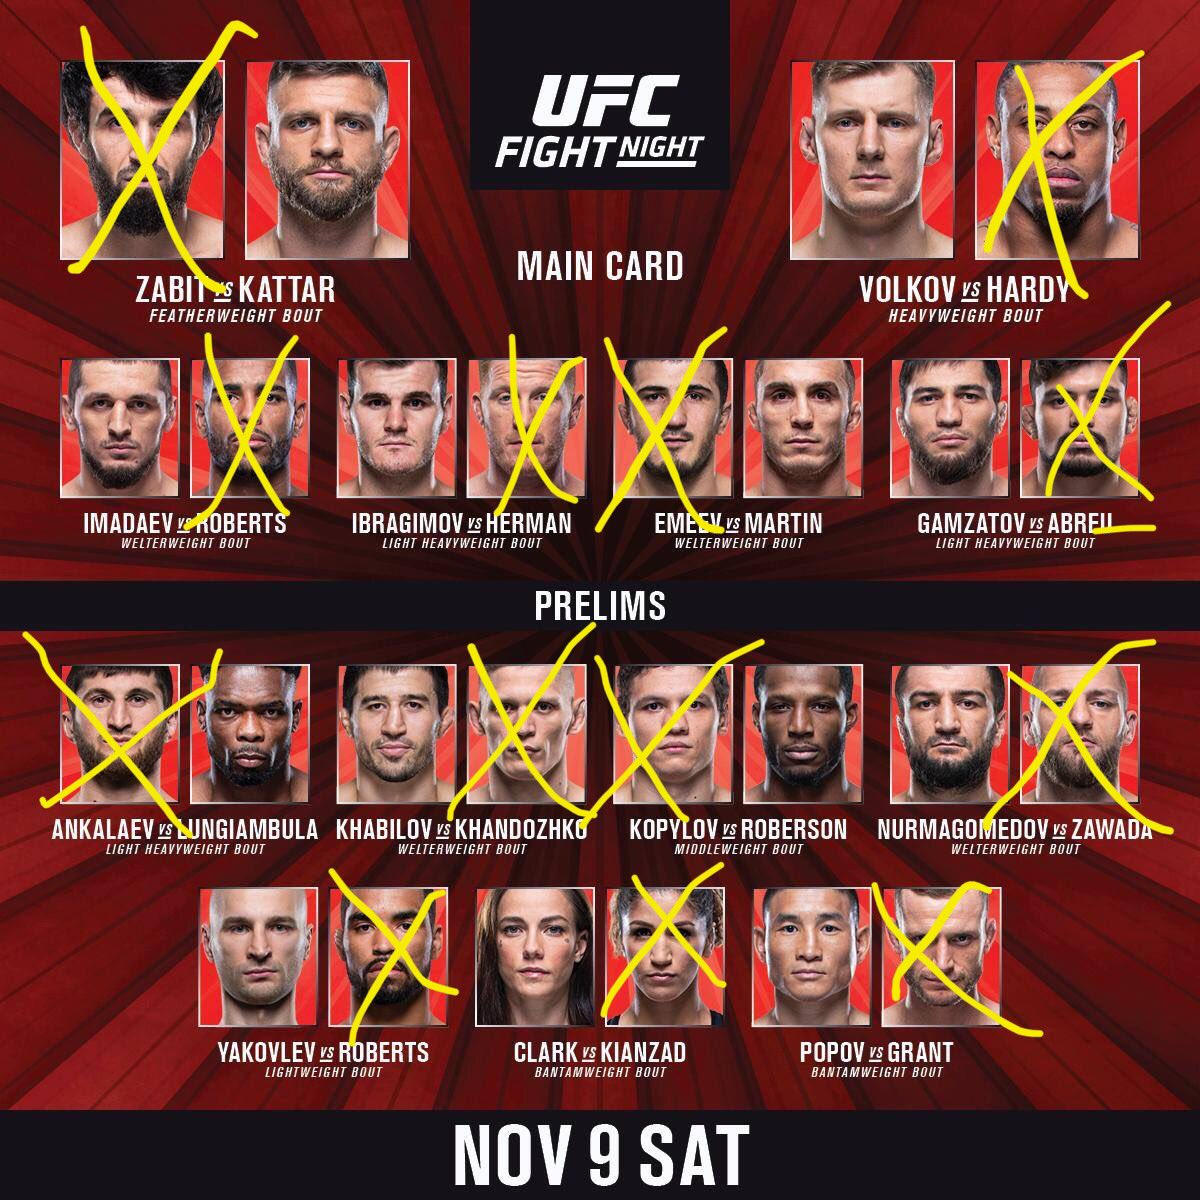 My picks for tonight's card!! #UFCMoscow #UFC